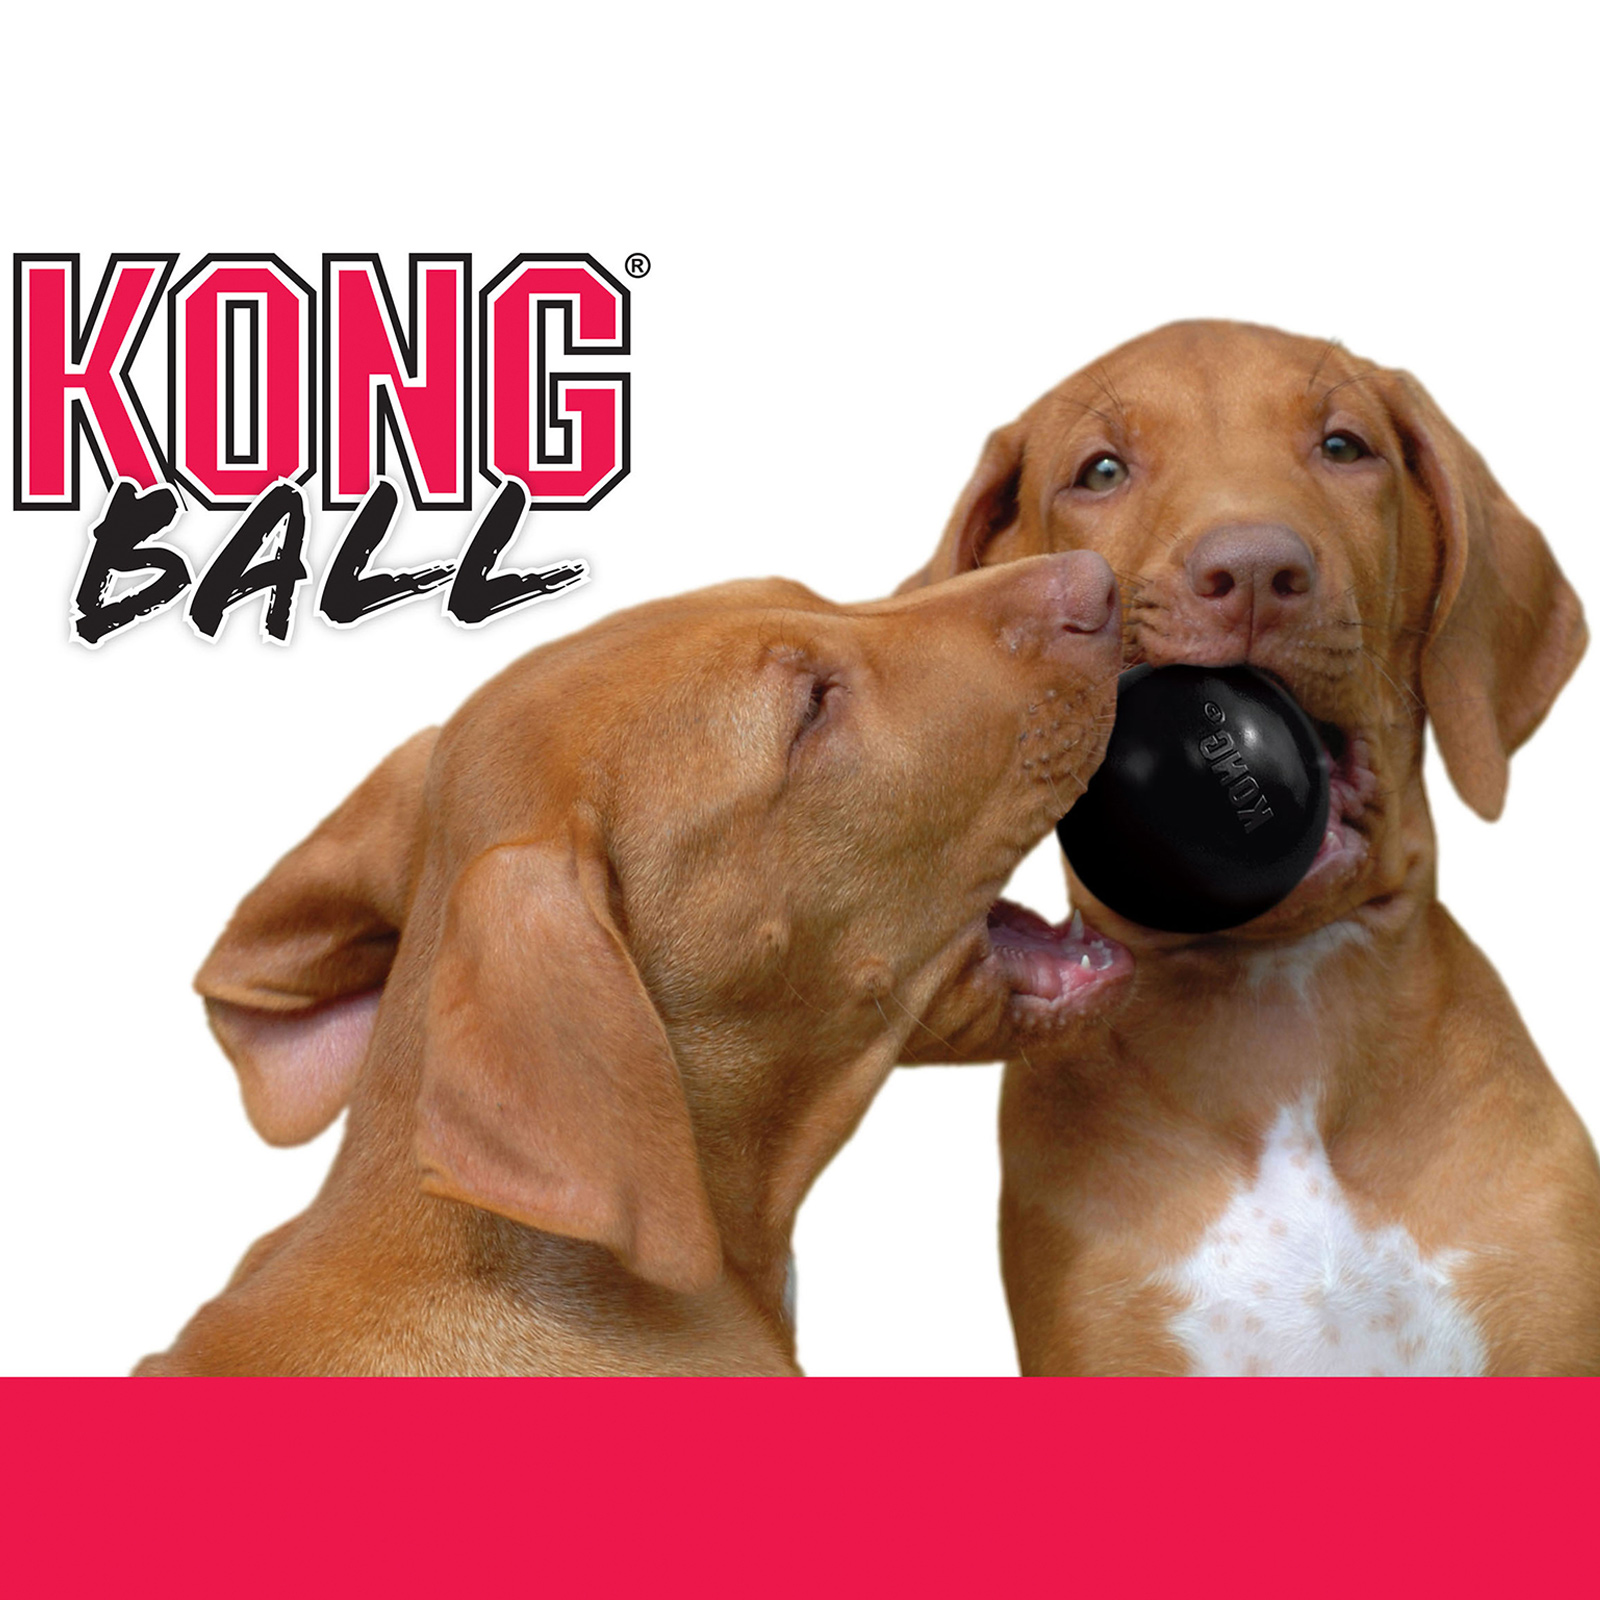 Kong Extreme Black Ball Medium Large Toy For Dogs 17 51